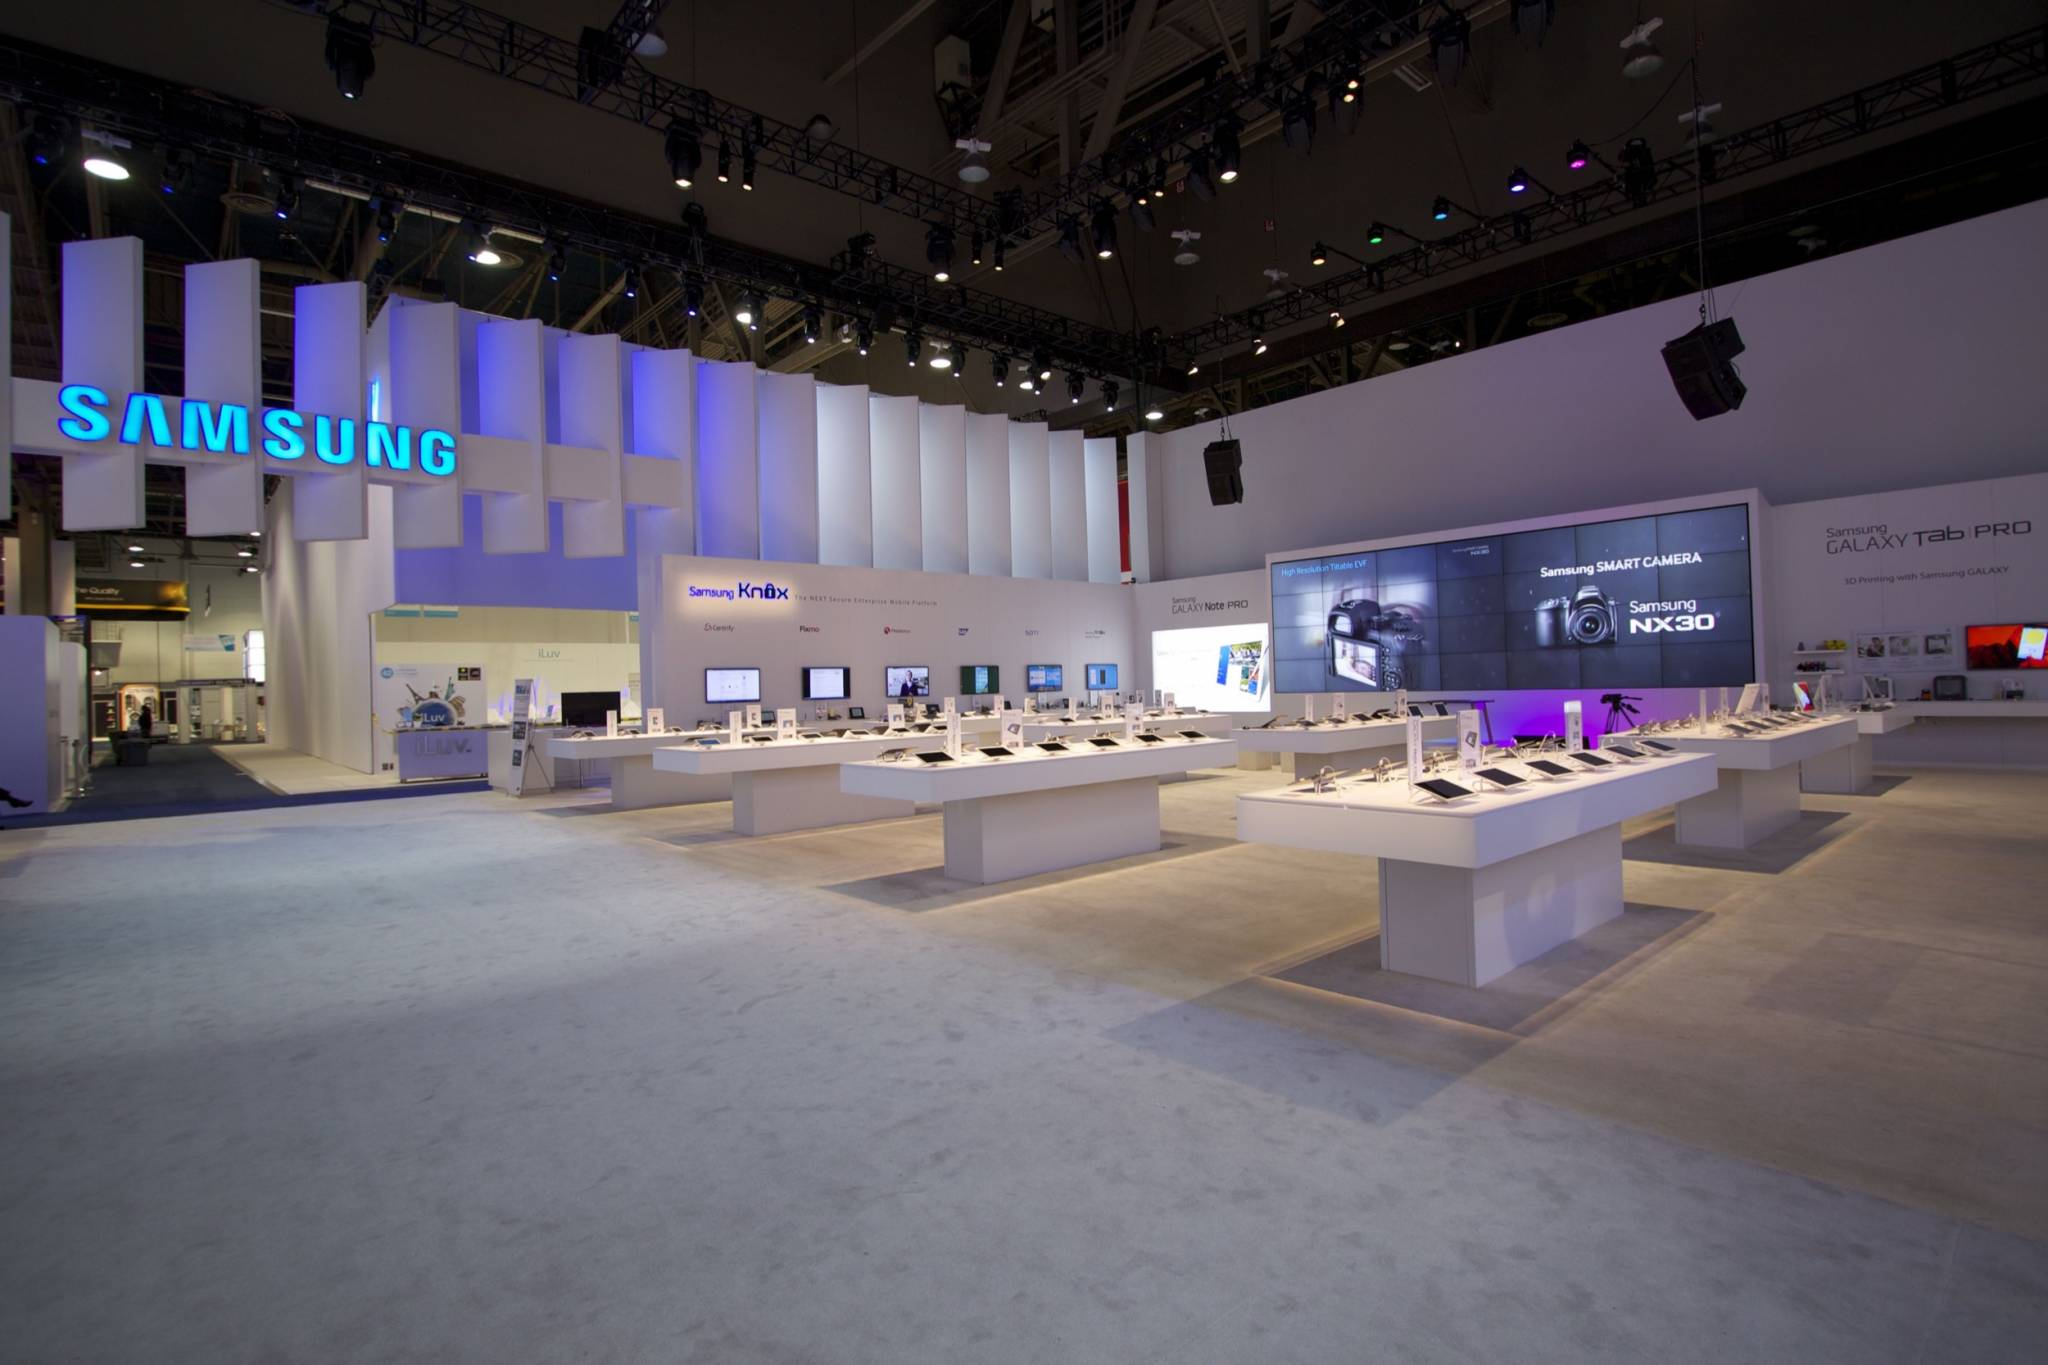 Exhibition Stand Display Lighting : Ces samsung exhibit fine design associates